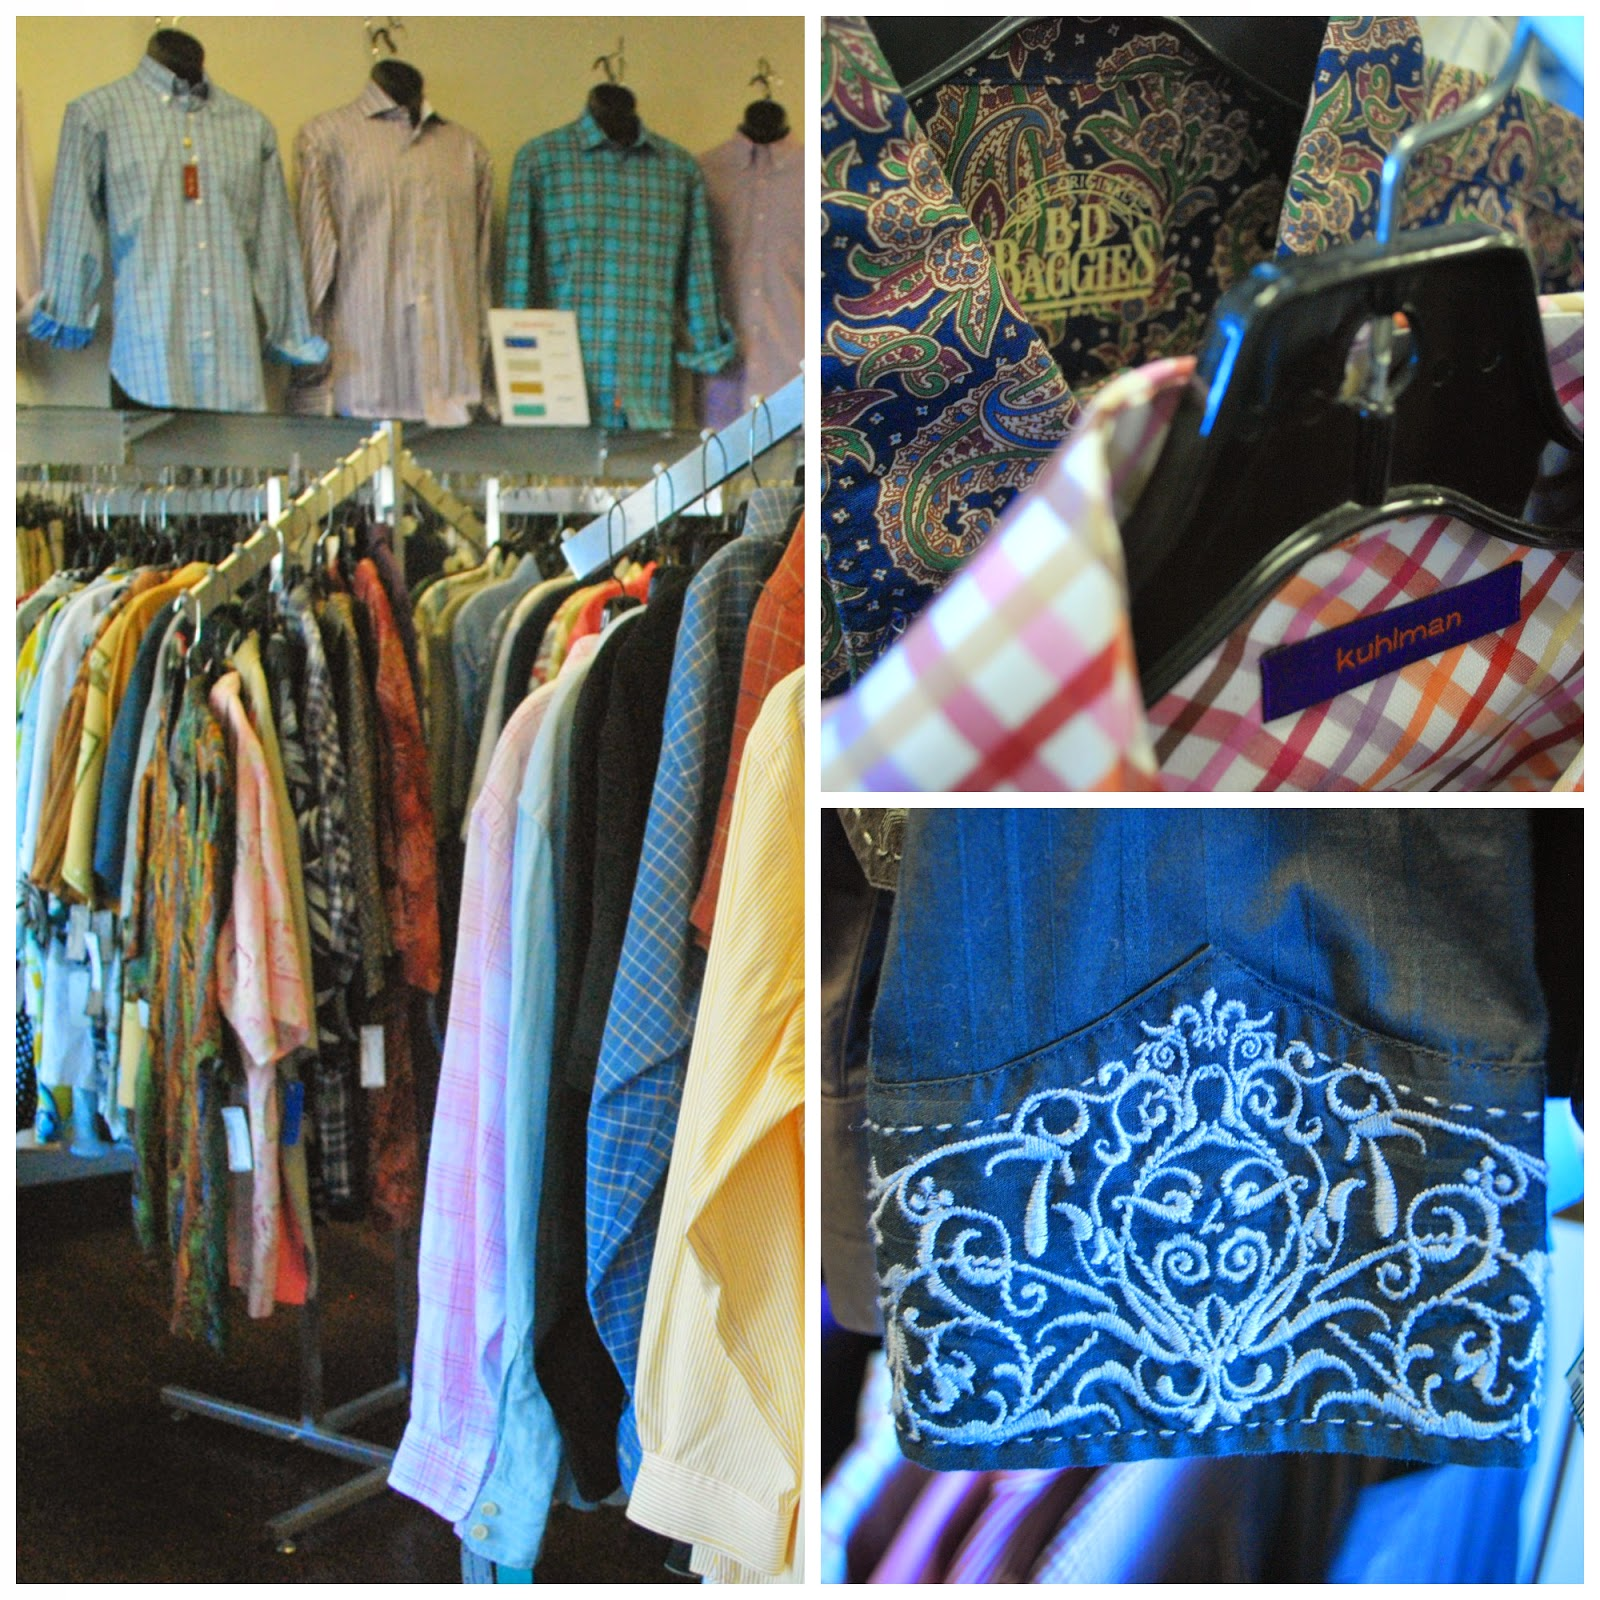 Designer Clothes For Men Consignment You must stop in to see the